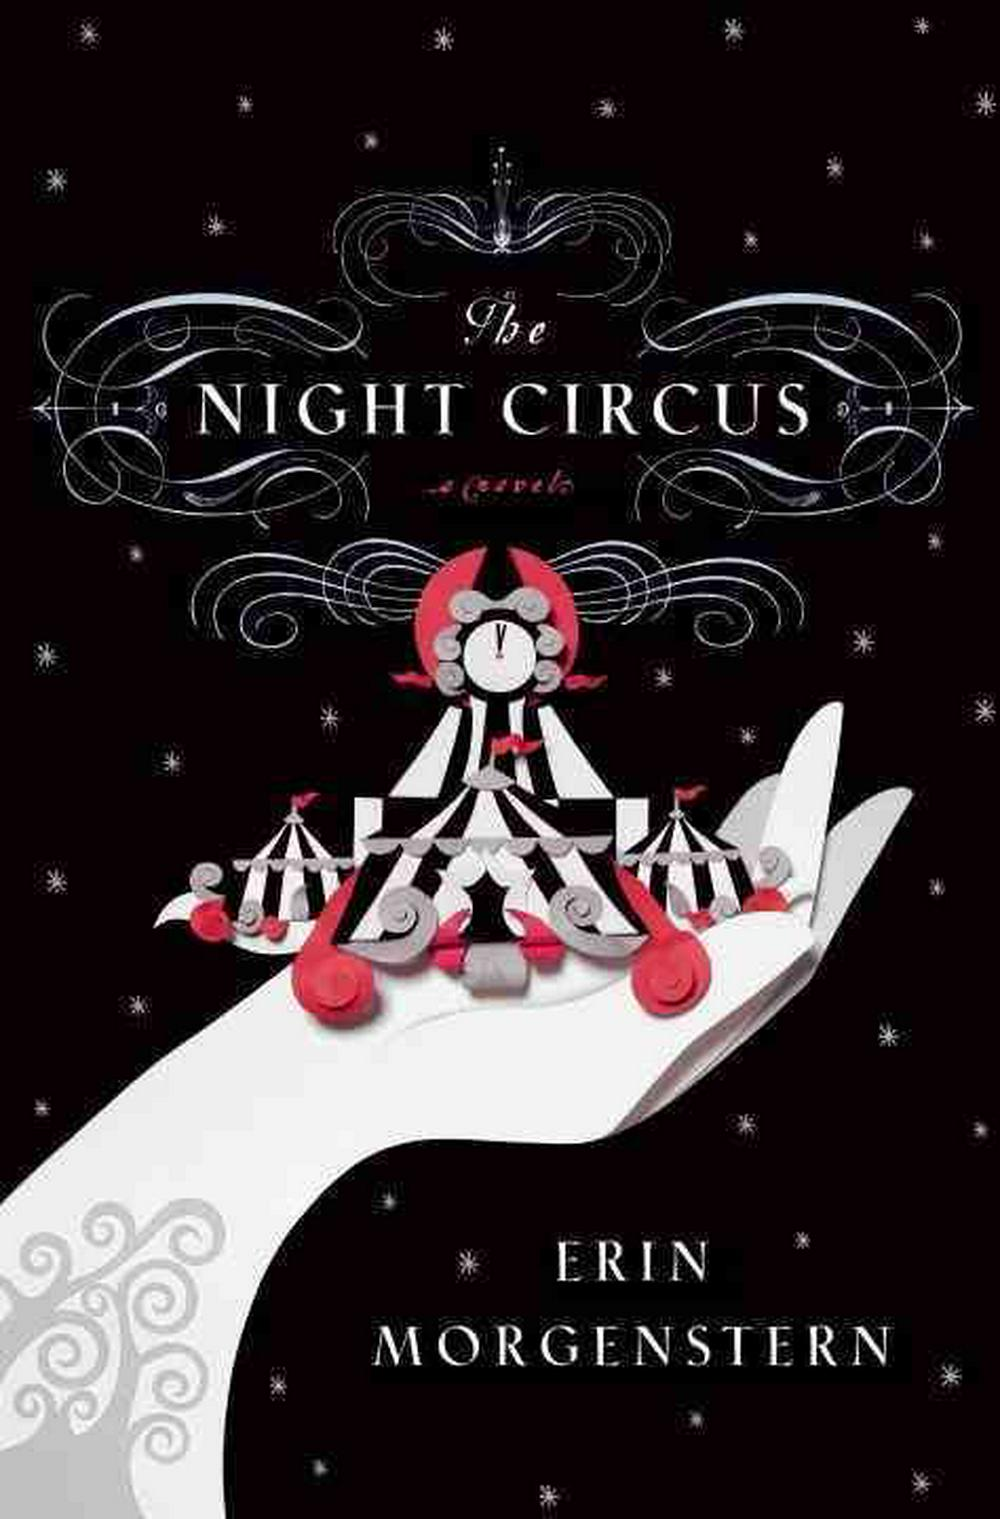 The Night Circus by Erin Morgenstern, ISBN: 9780385534635